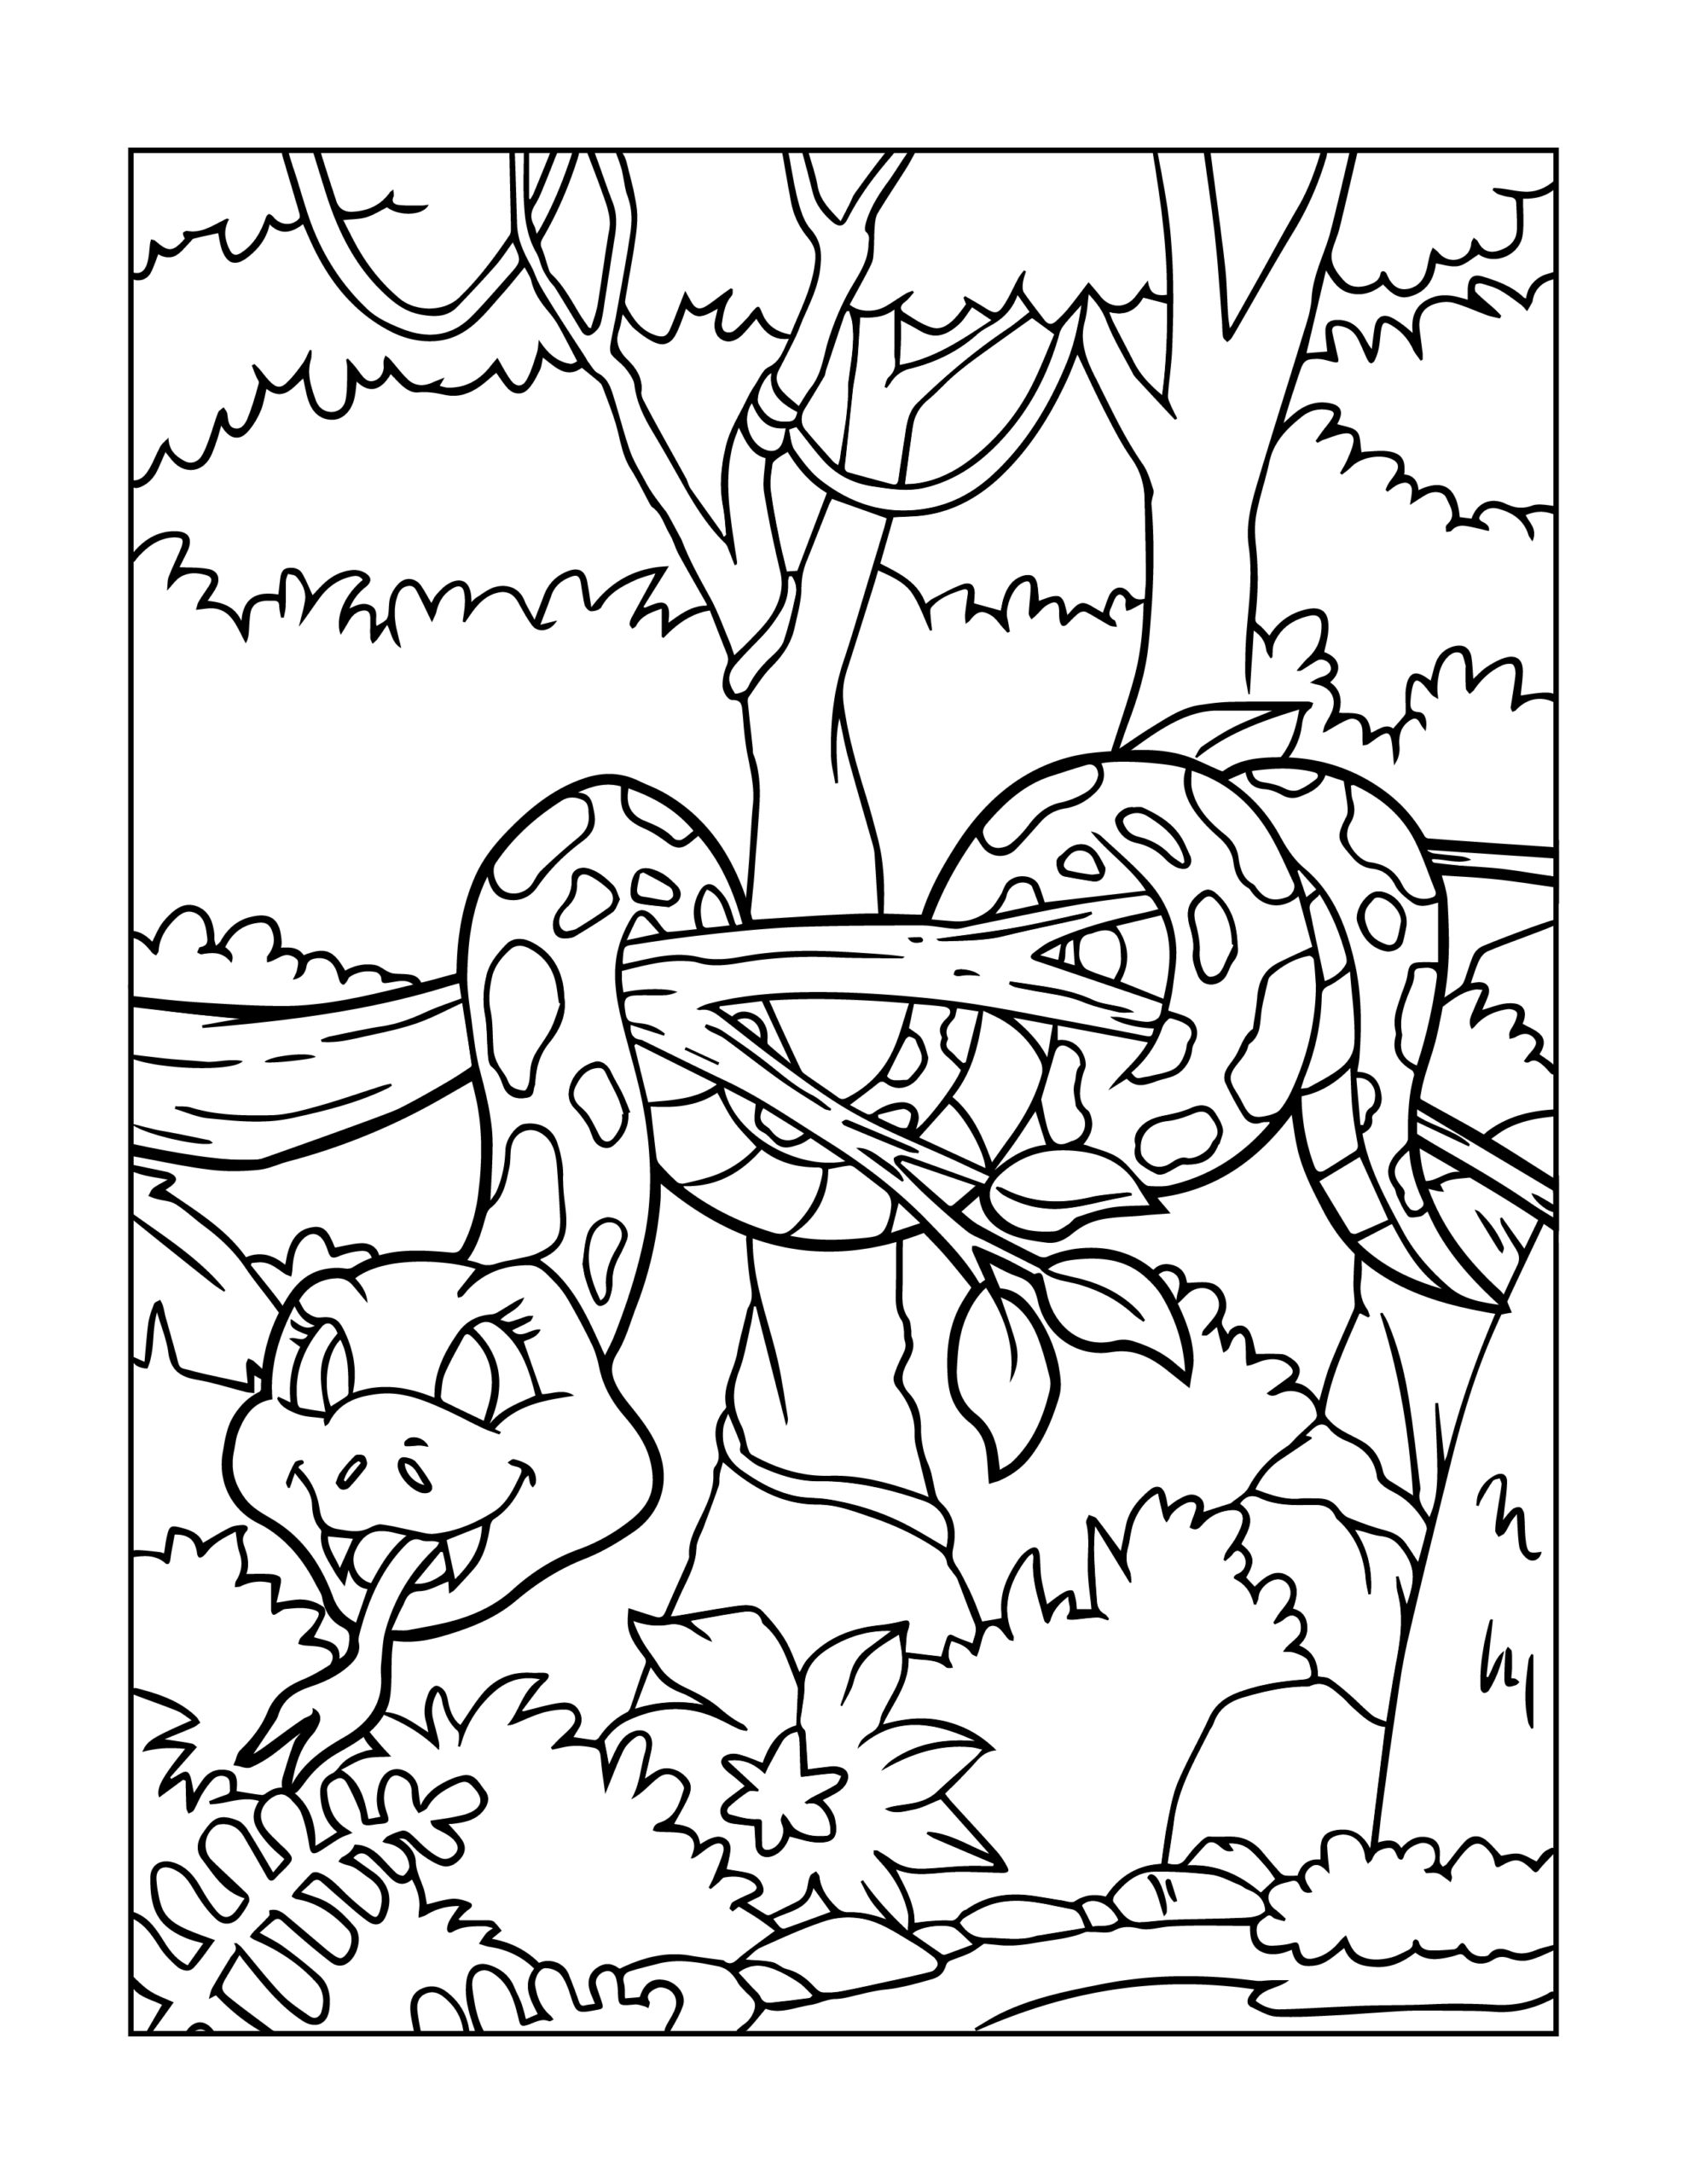 zoo coloring picture zoo animal coloring page 2 zoo picture coloring